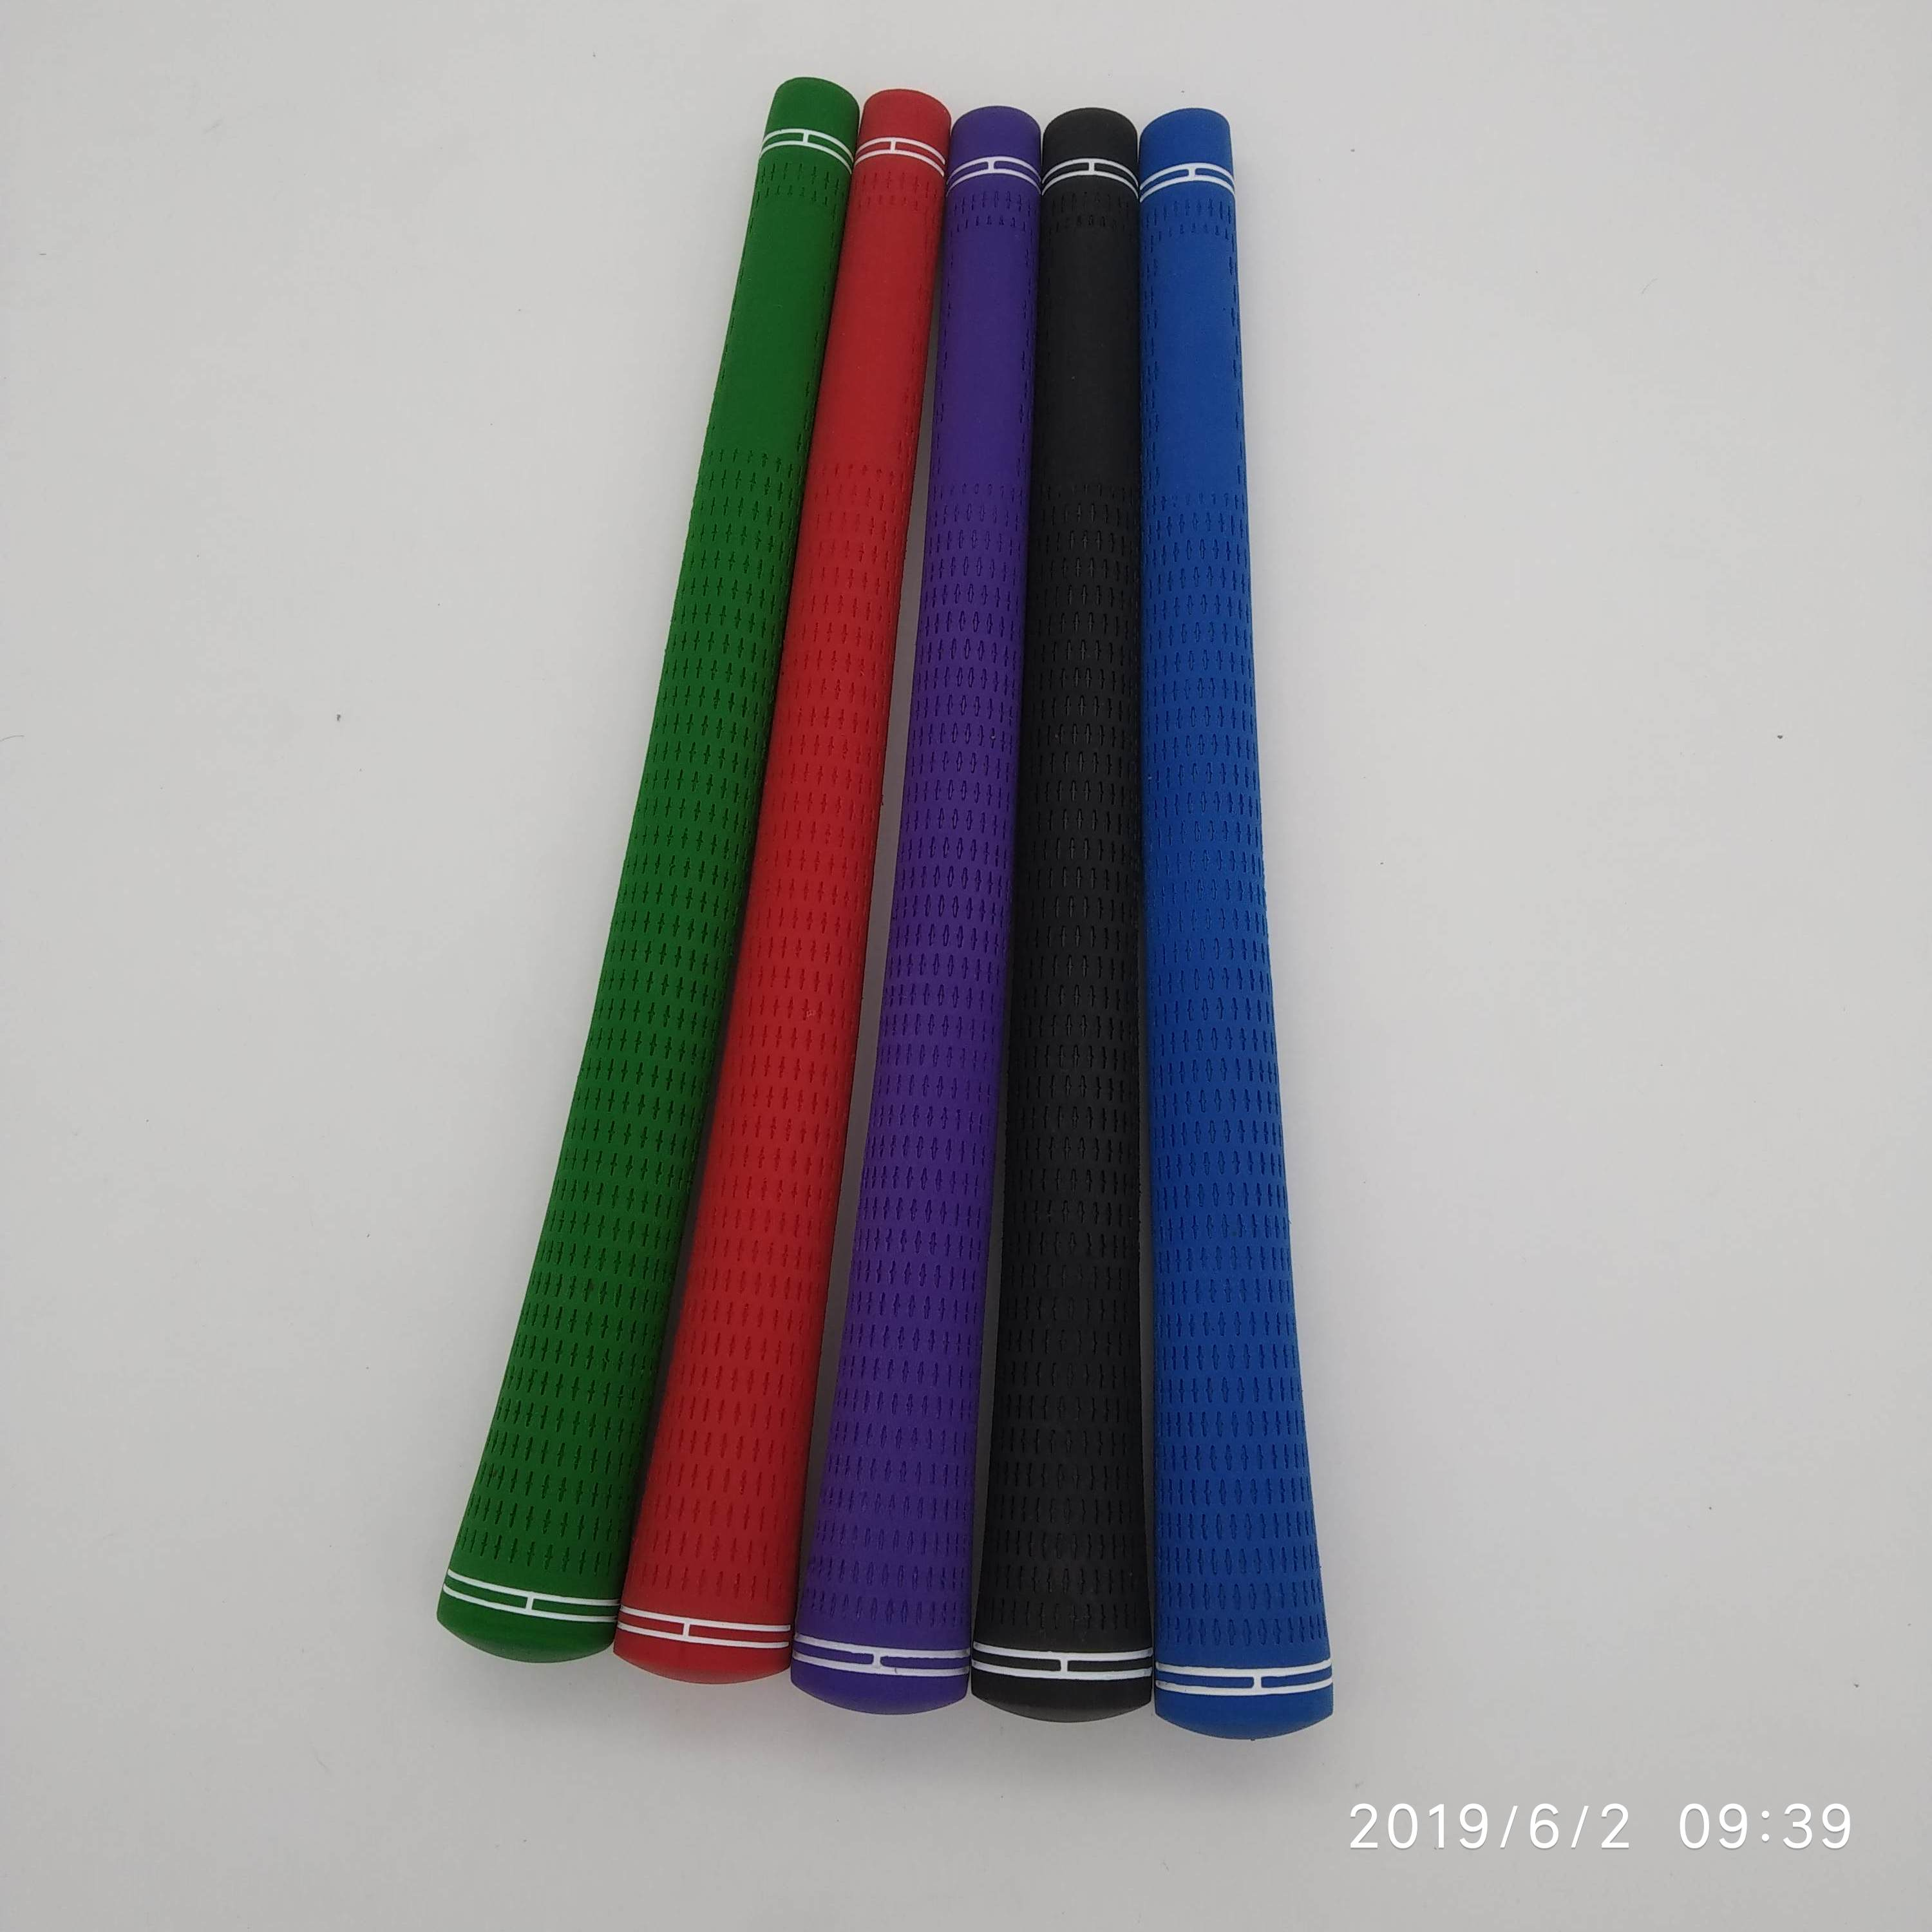 13pcs per lot 60R blank logo M60 iron driver rubber golf grip-in Club Grips from Sports & Entertainment